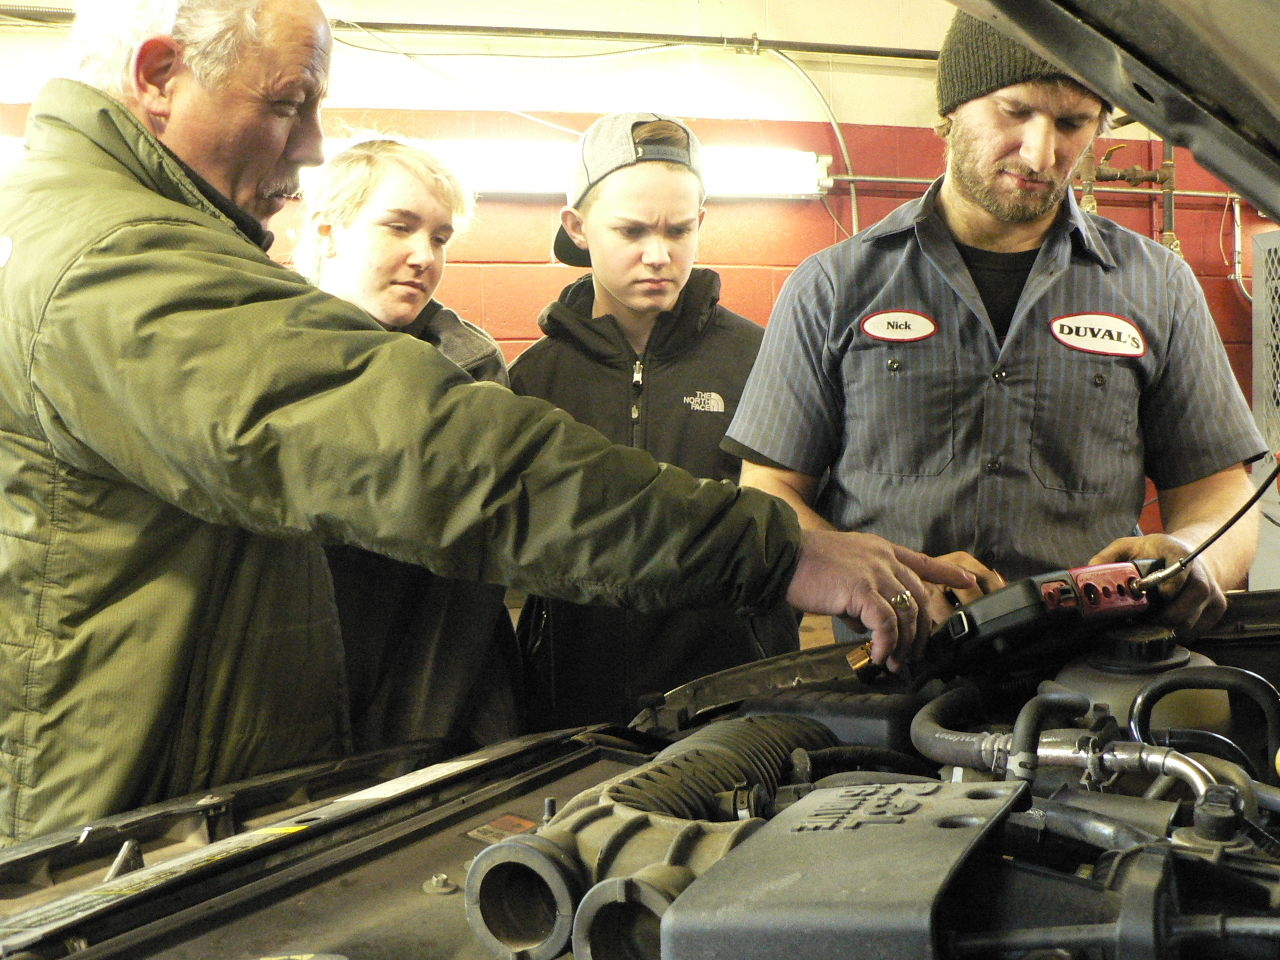 job shadowing where once he watched south portland auto mechanic mark duval left offers a job shadow opportunity to south portland eighth graders abby heskett and garrett lynn center last week